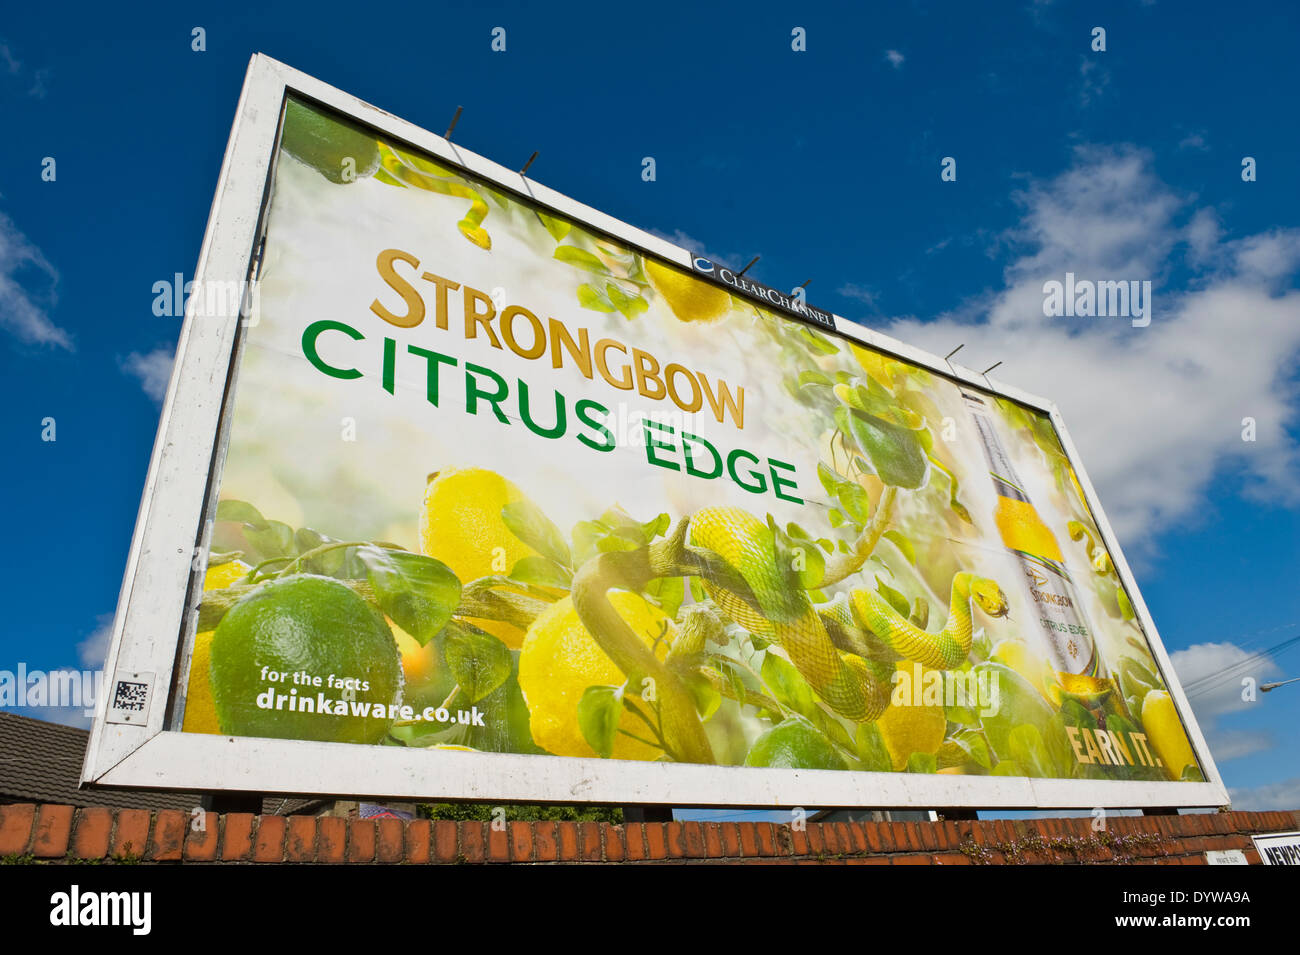 Bulmer's Strongbow Citrus Edge Cider 48 sheet advertising billboard poster on ClearChannel roadside site in Newport South Wales UK - Stock Image